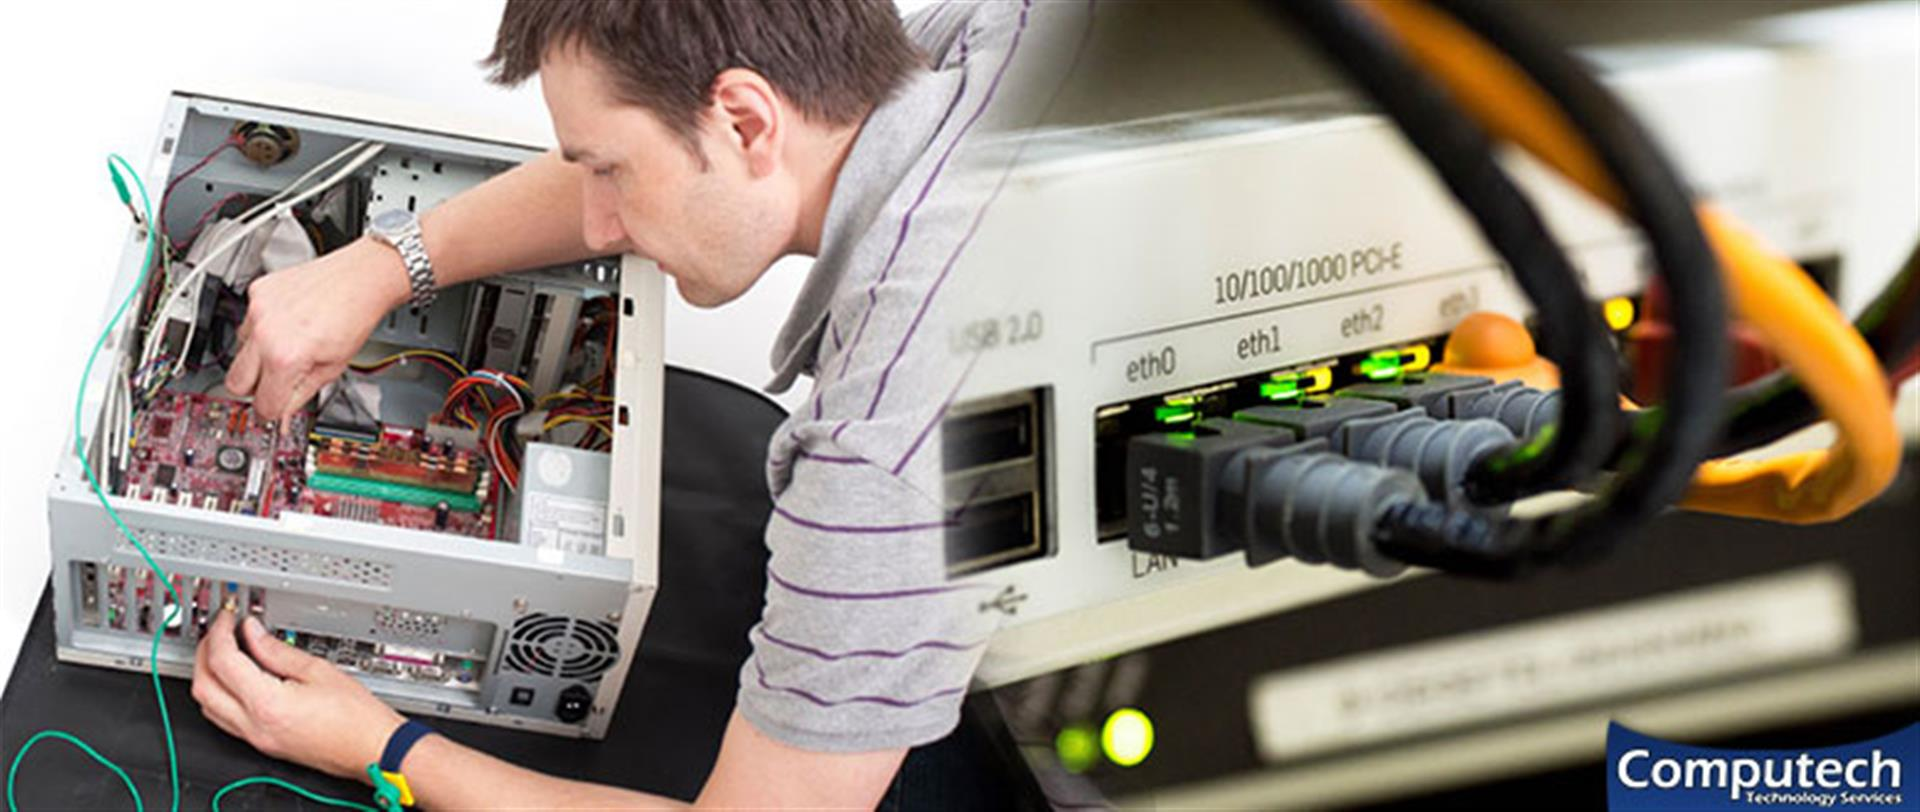 Dublin Virginia On Site Computer & Printer Repairs, Networking, Voice & Data Cabling Services